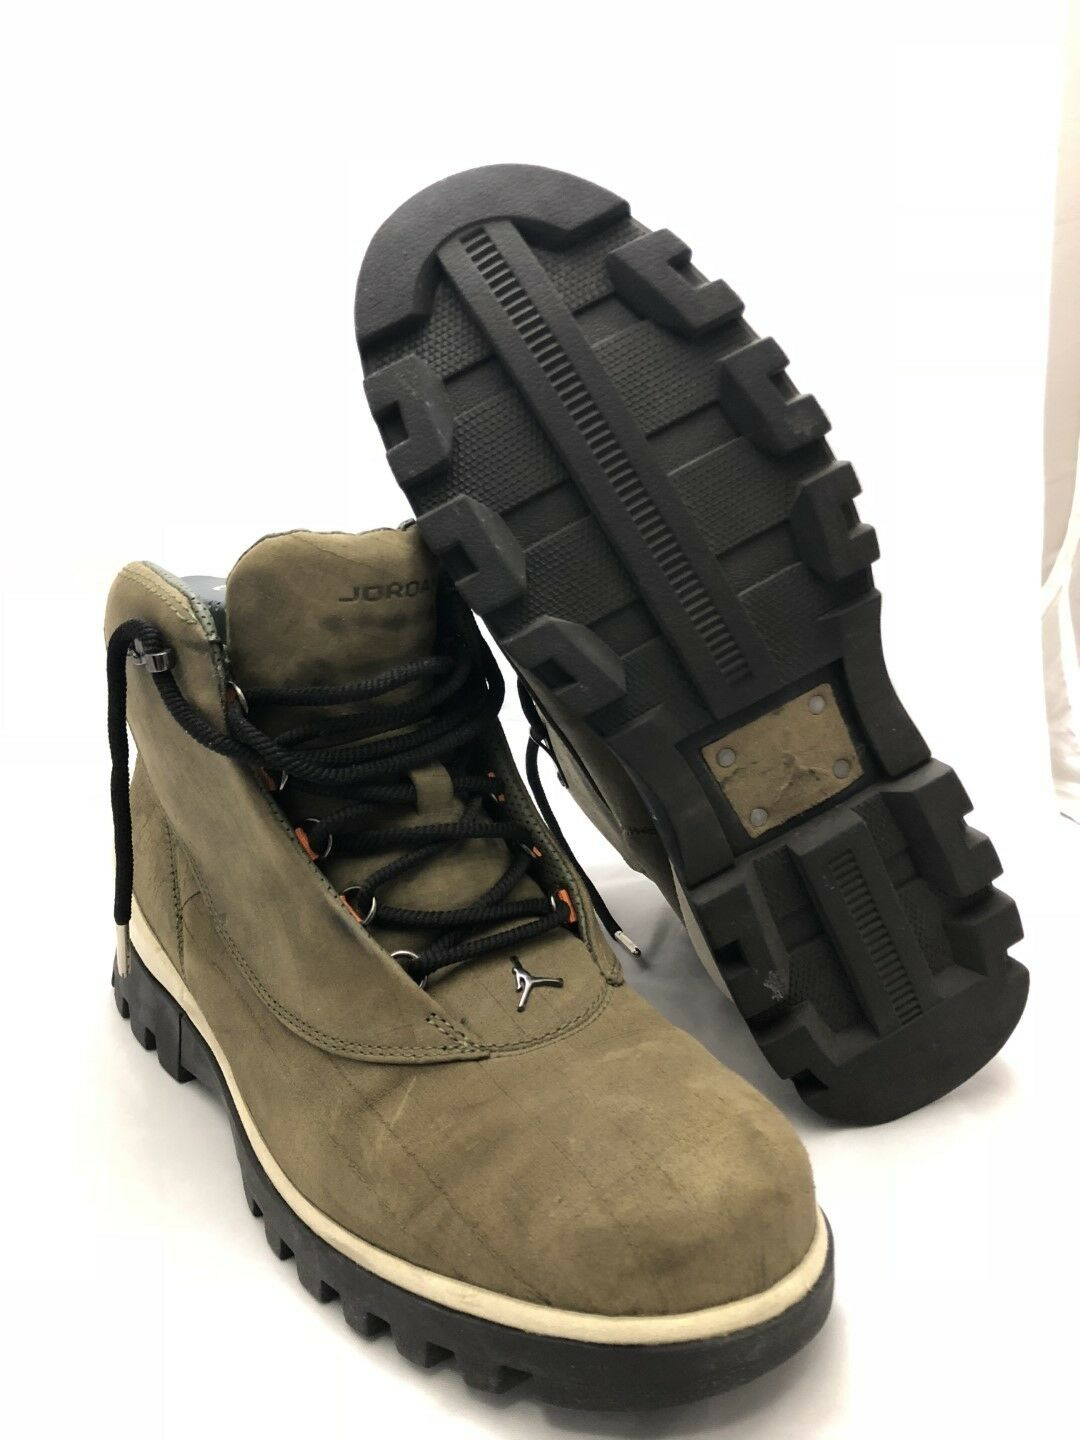 USED DS Air Nike Air DS Jordan  2CLEAN Boots Army Olive Orange 2006 Size 11 313509 381 b0ec9c